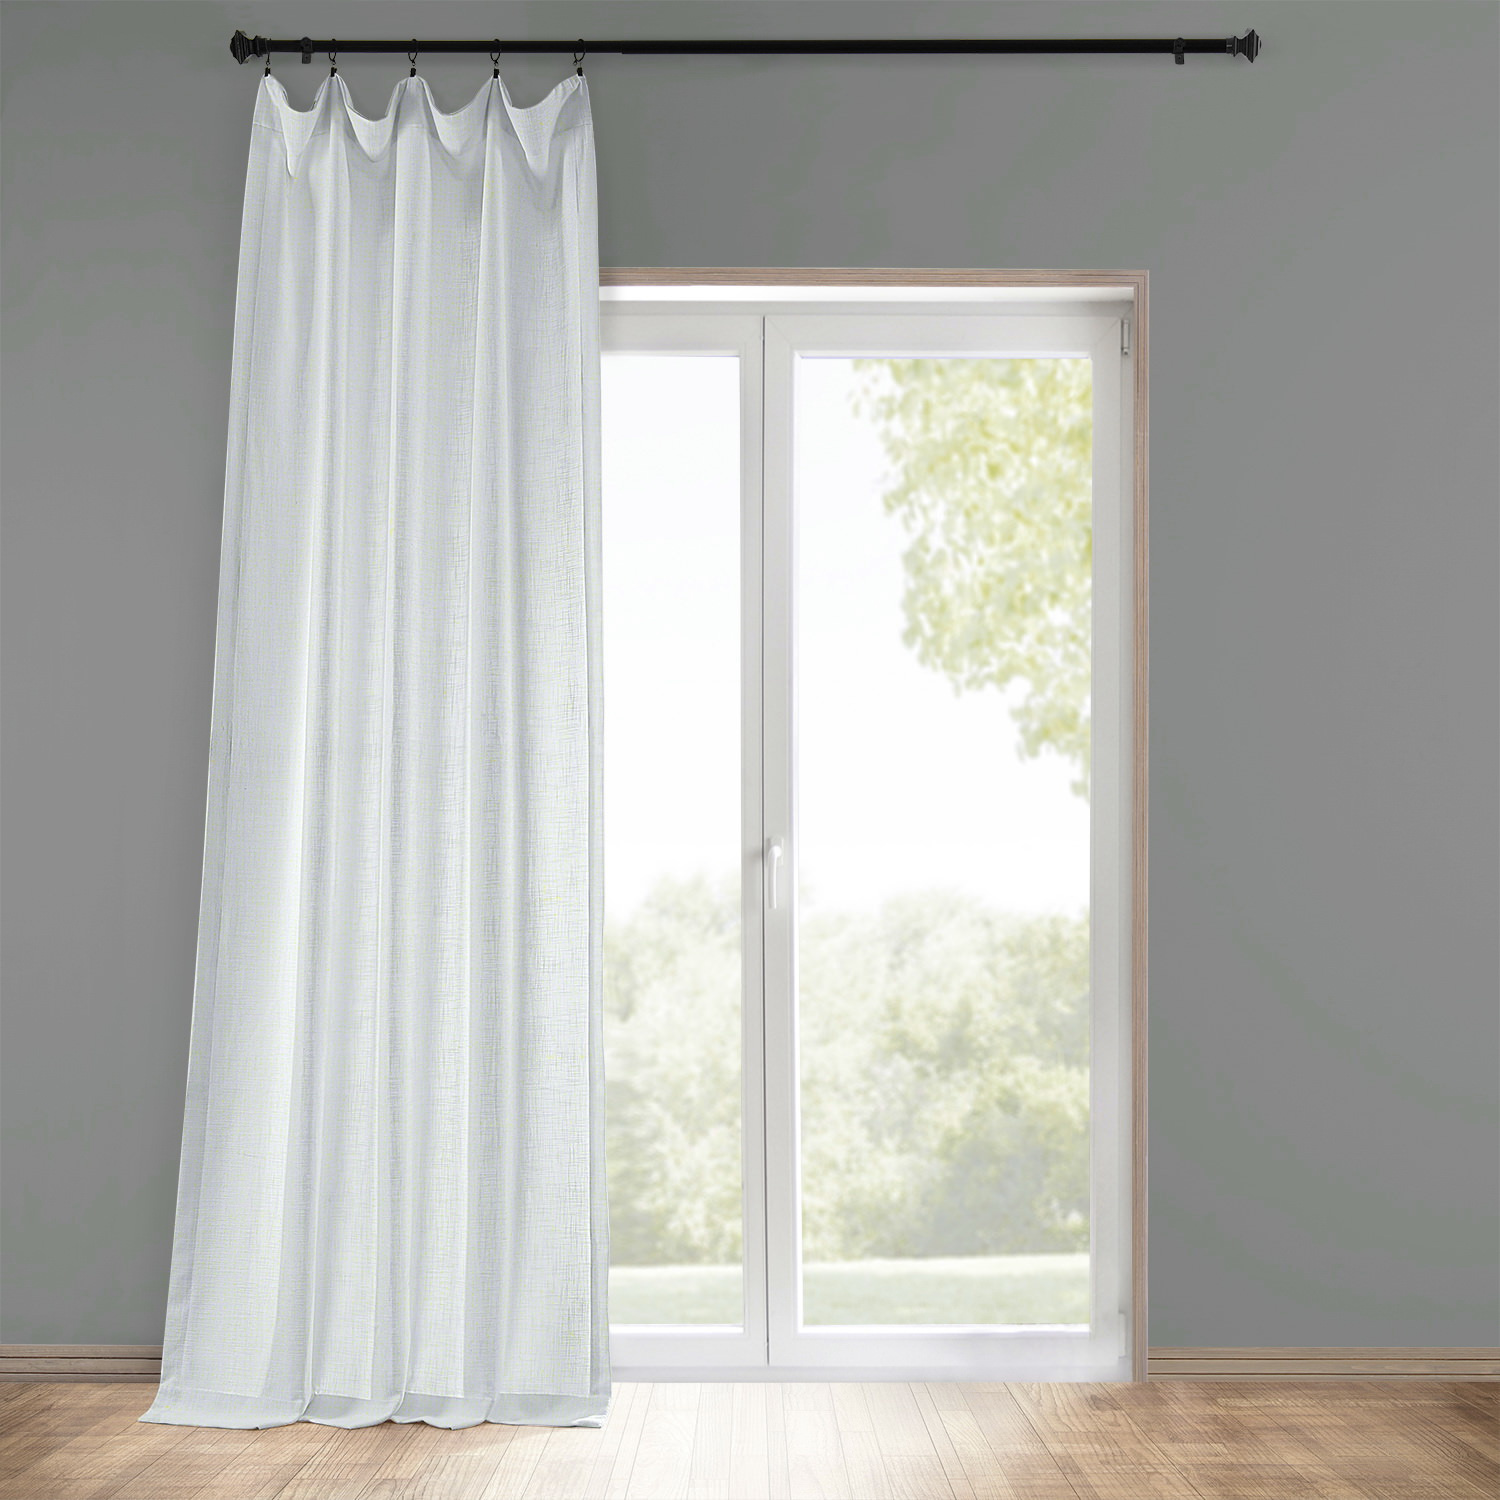 Faux linen curtains